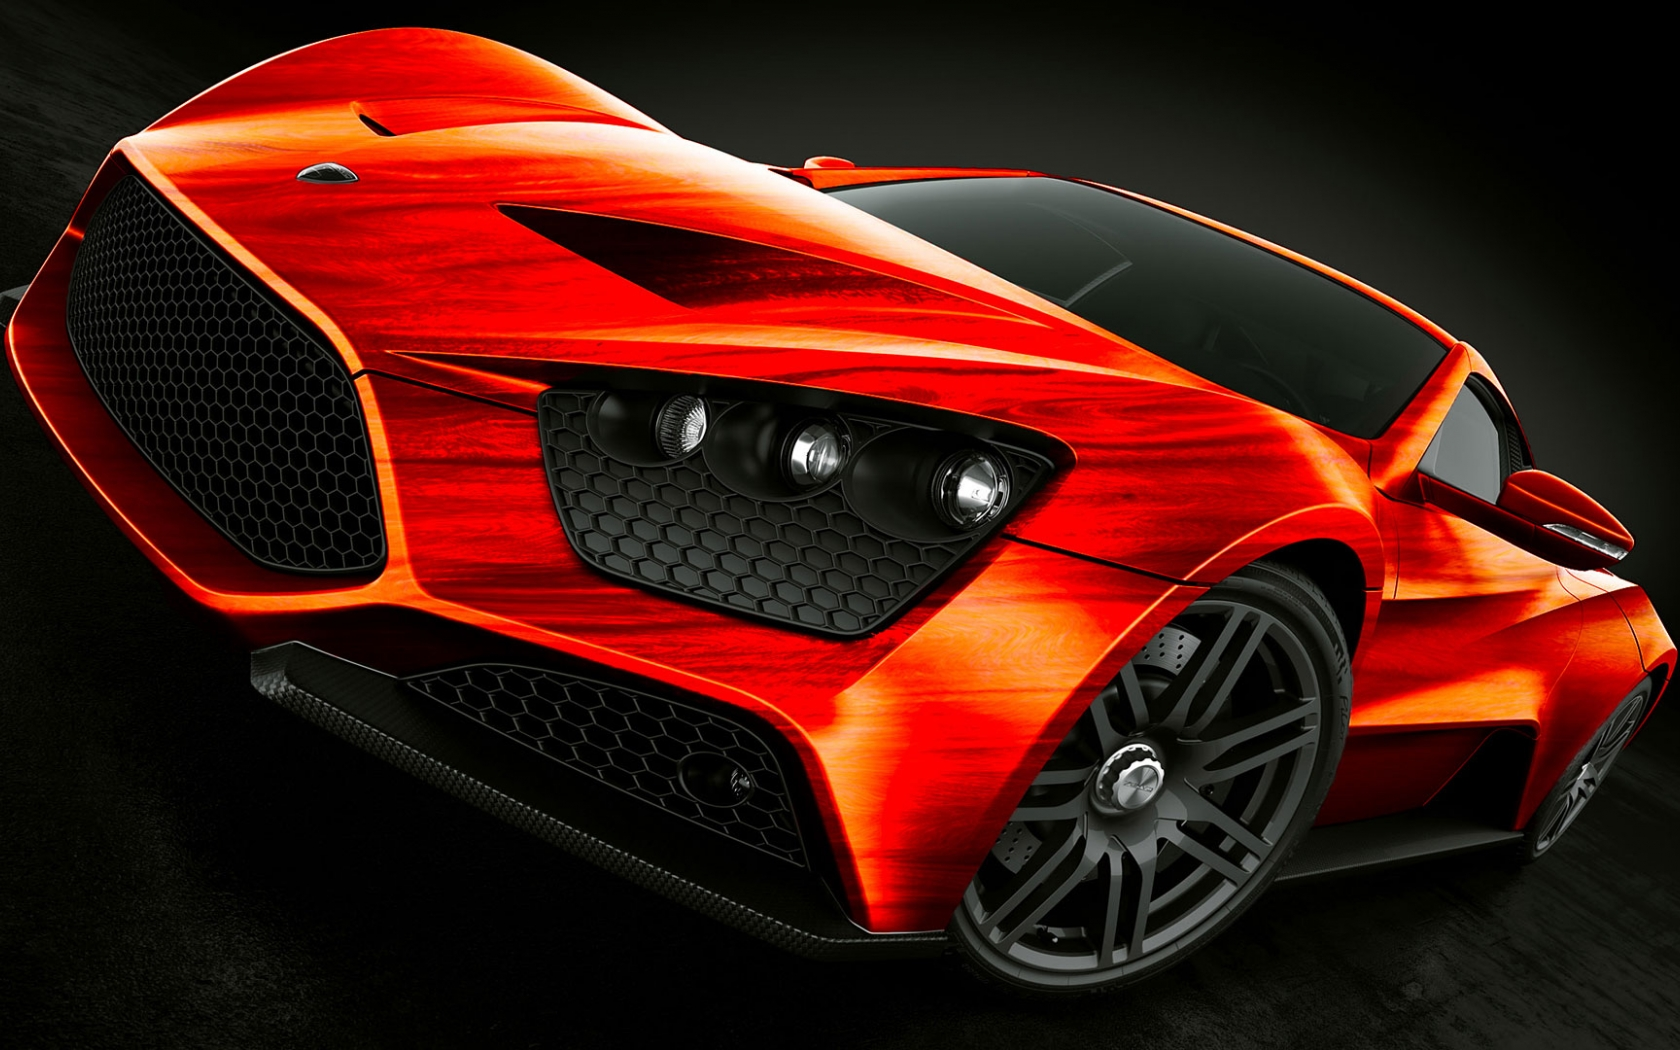 Bike Car Wallpaper Download Zenvo St1 Headlamps 3003371 Hd Wallpaper Backgrounds Download